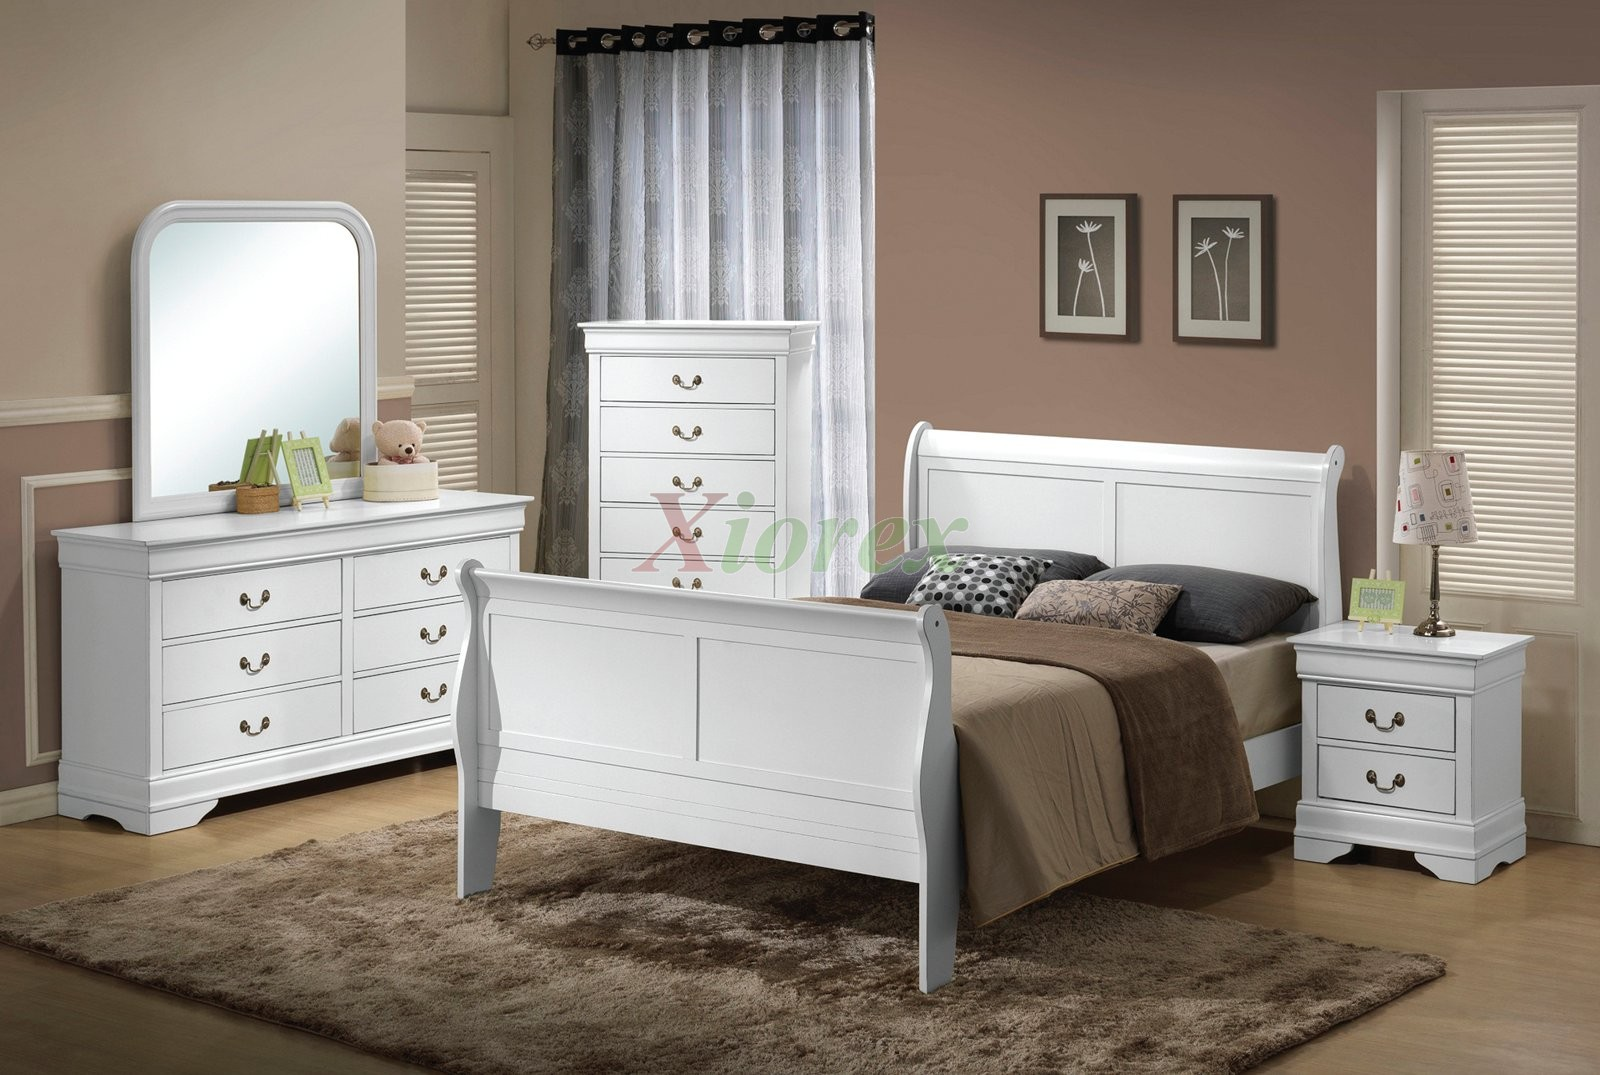 Semi gloss White Bedroom Suite 170 w Sleigh Like Queen and King Beds  Black Bedroom  Furniture. Semi gloss Sleigh Like Bedroom Furniture Set 170 in Cherry Black White